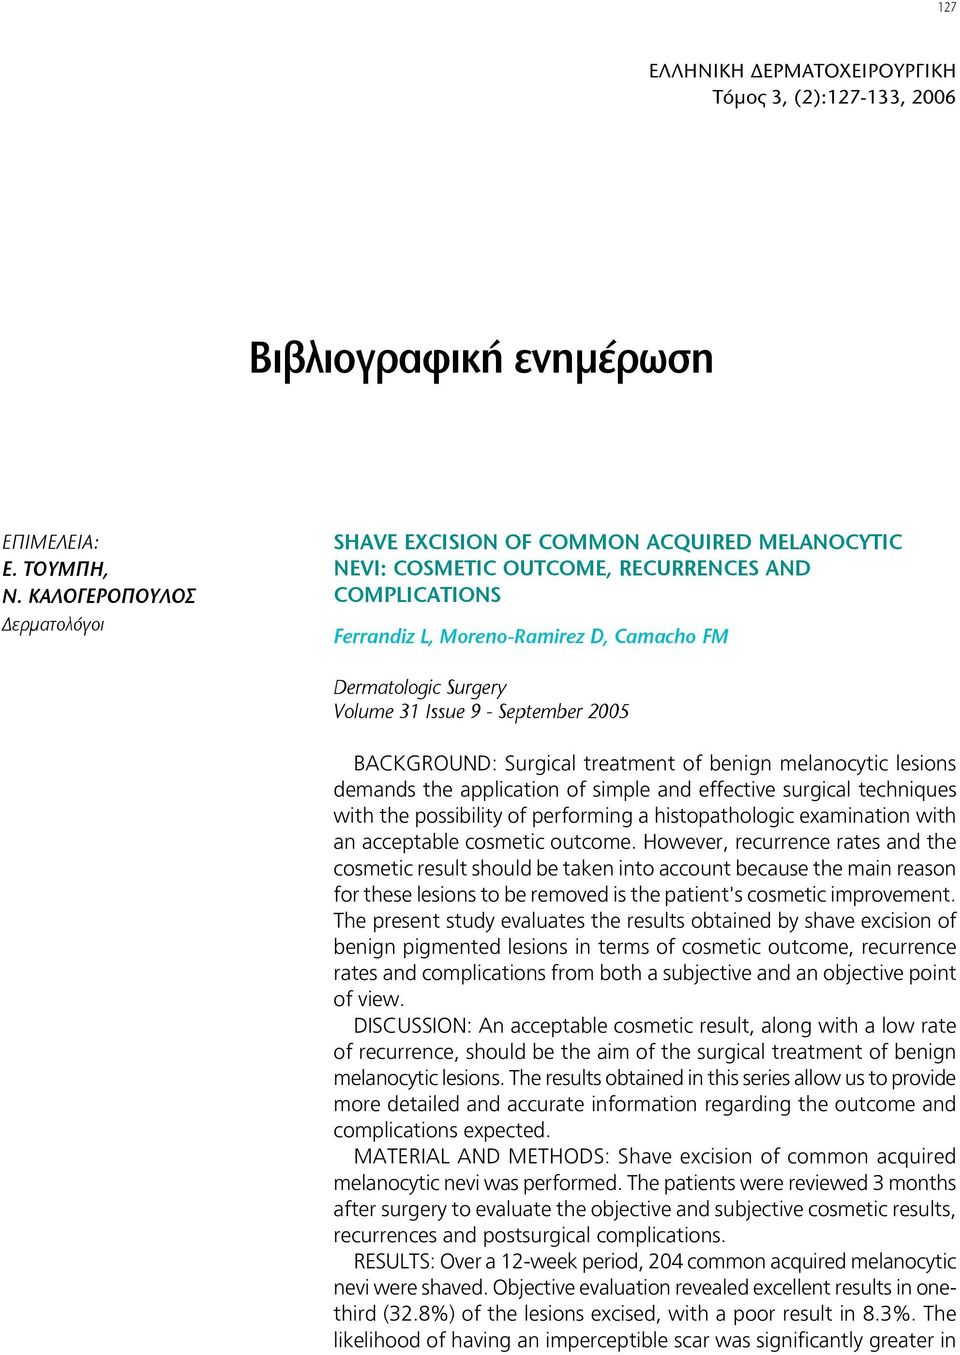 2005 BACKGROUND: Surgical treatment of benign melanocytic lesions demands the application of simple and effective surgical techniques with the possibility of performing a histopathologic examination